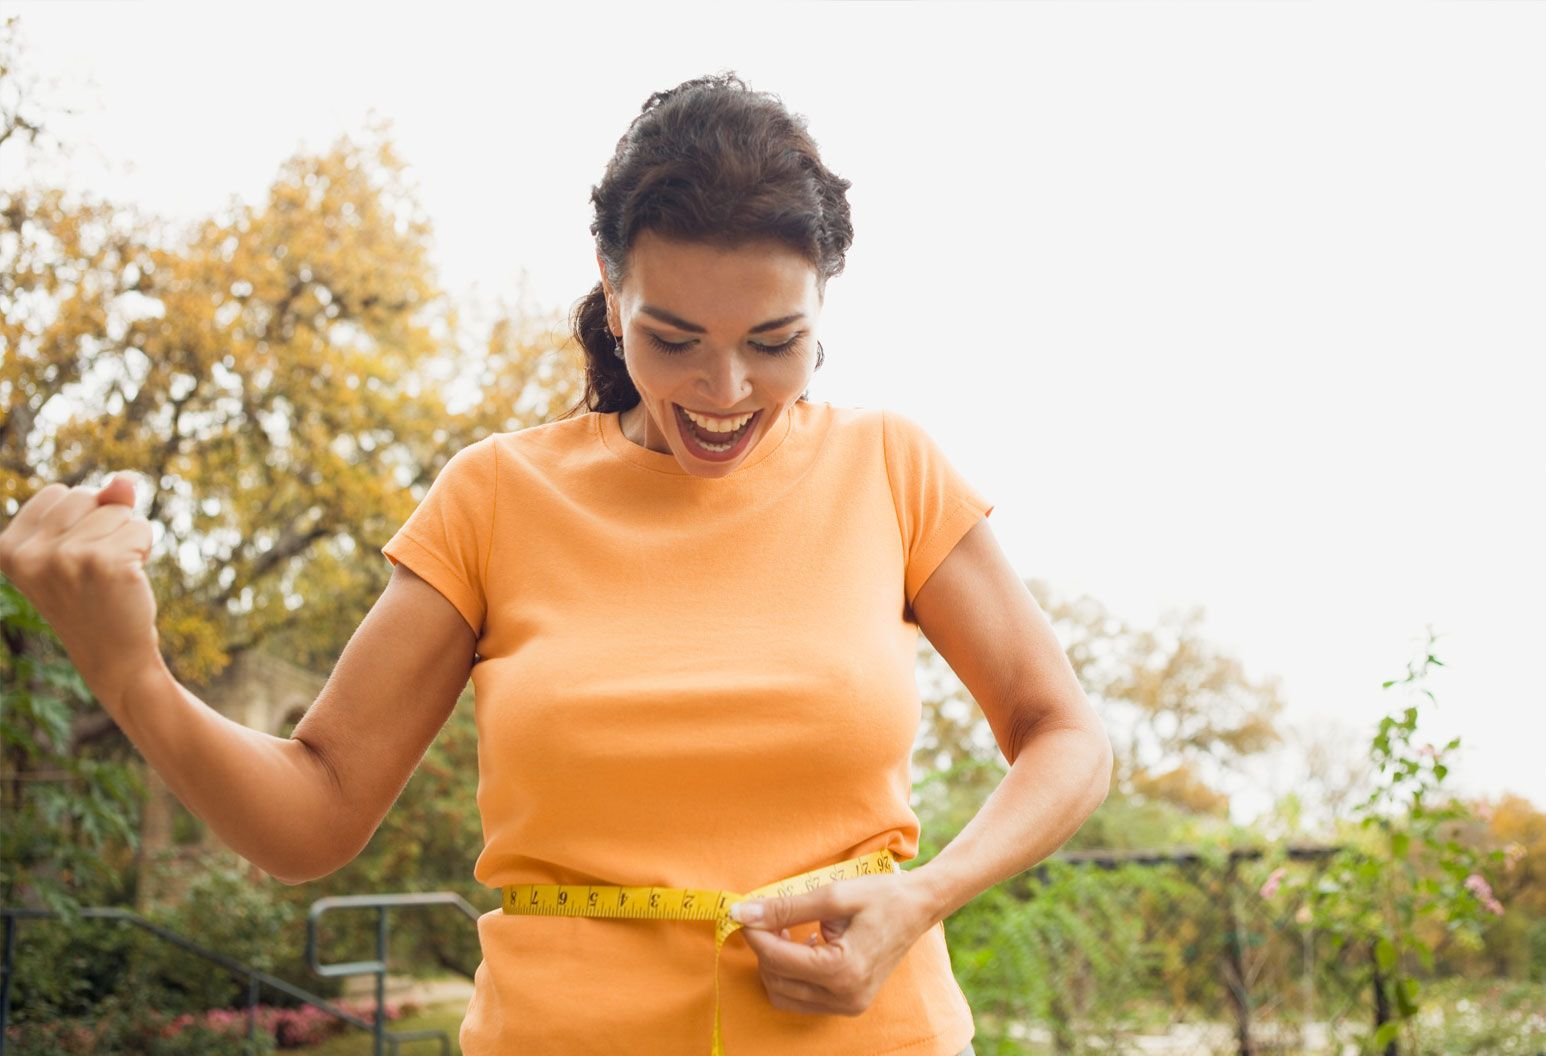 Woman with brown hair and yellow shirt smiles as she measures her waist